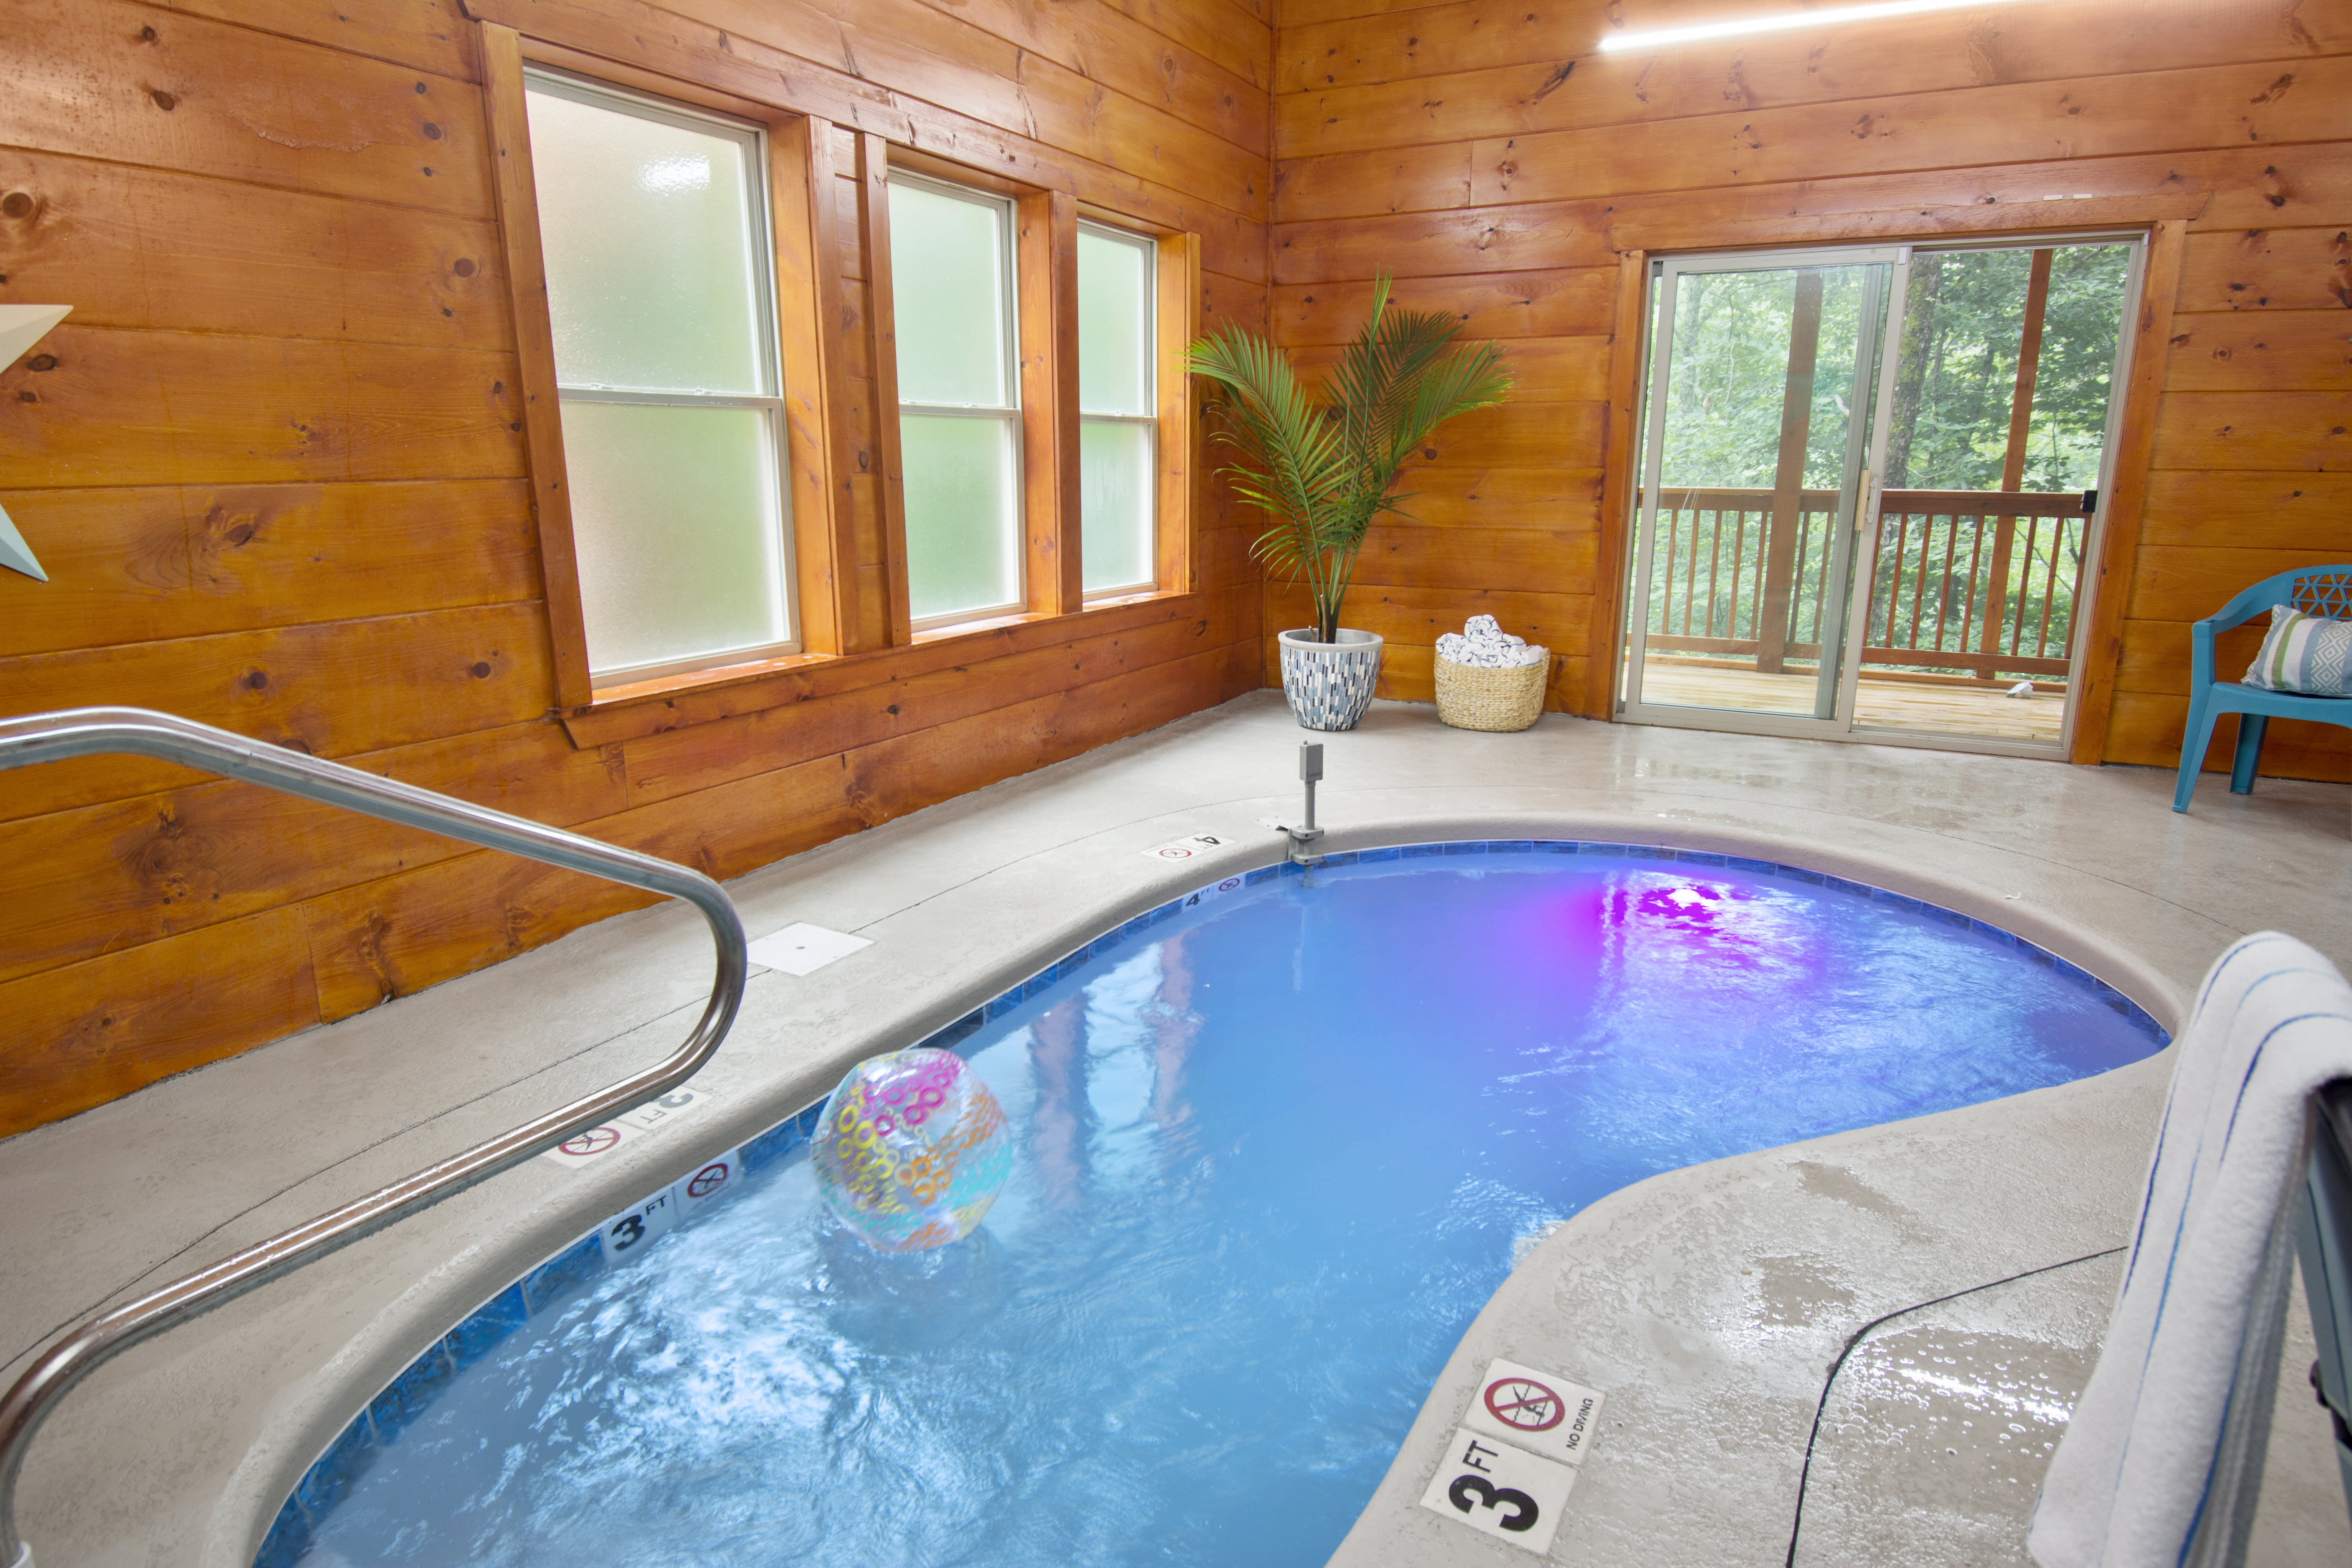 Private Pool at our Stay Minty Cabins for your Smoky Mountains trip.